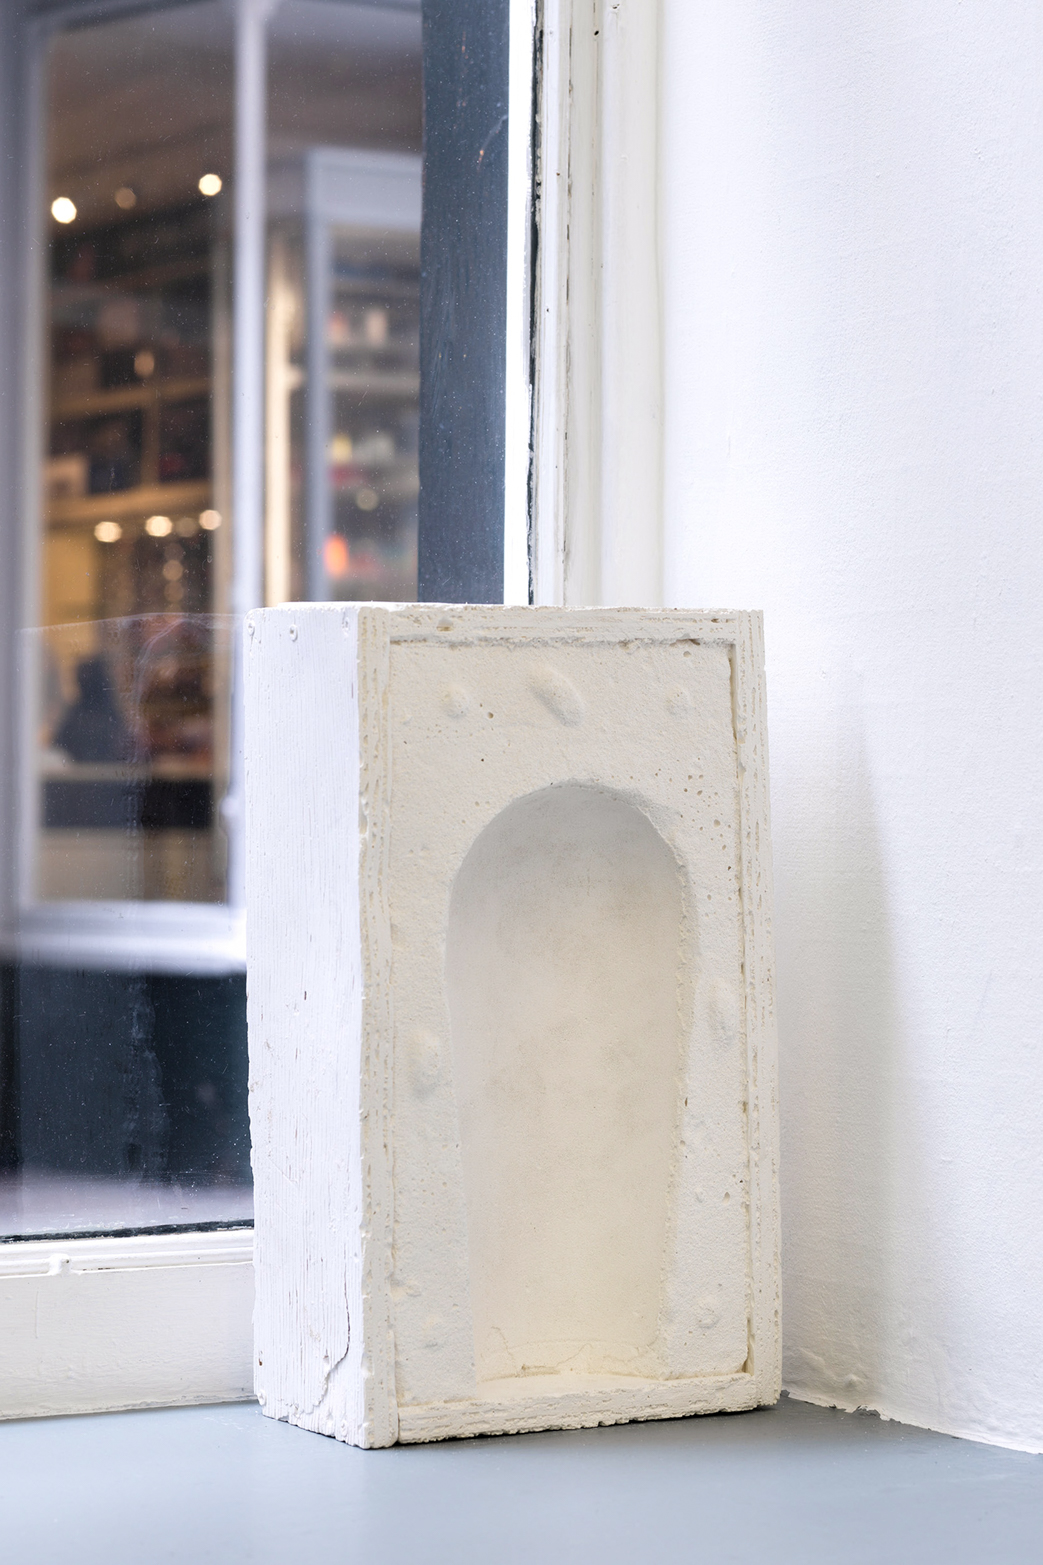 Andrea Zucchini, Untitled, 2014, plaster cast with rainwater.